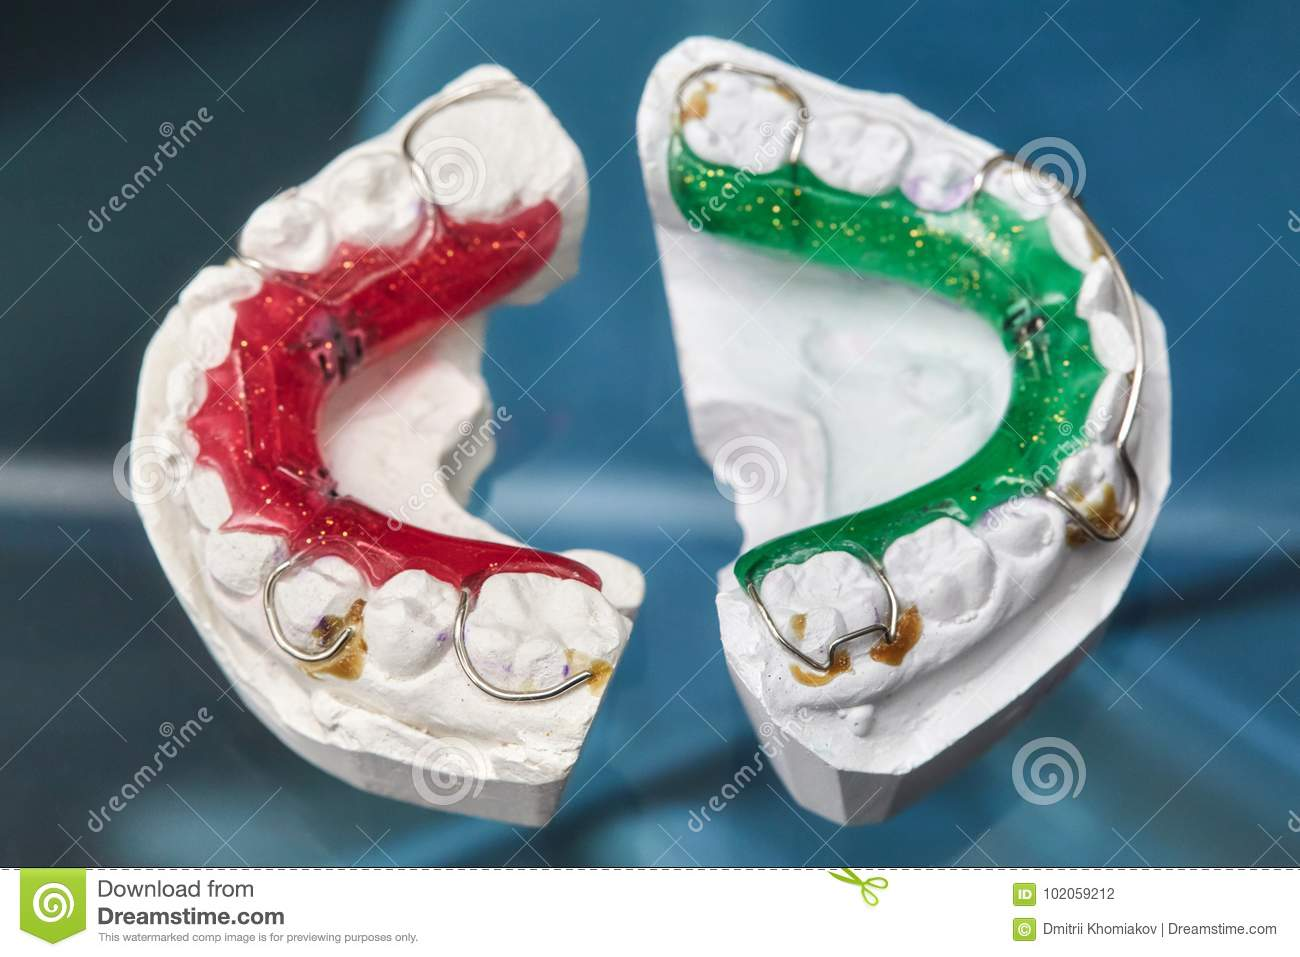 Colorful Dental Braces Or Retainers For Teeth On Glass